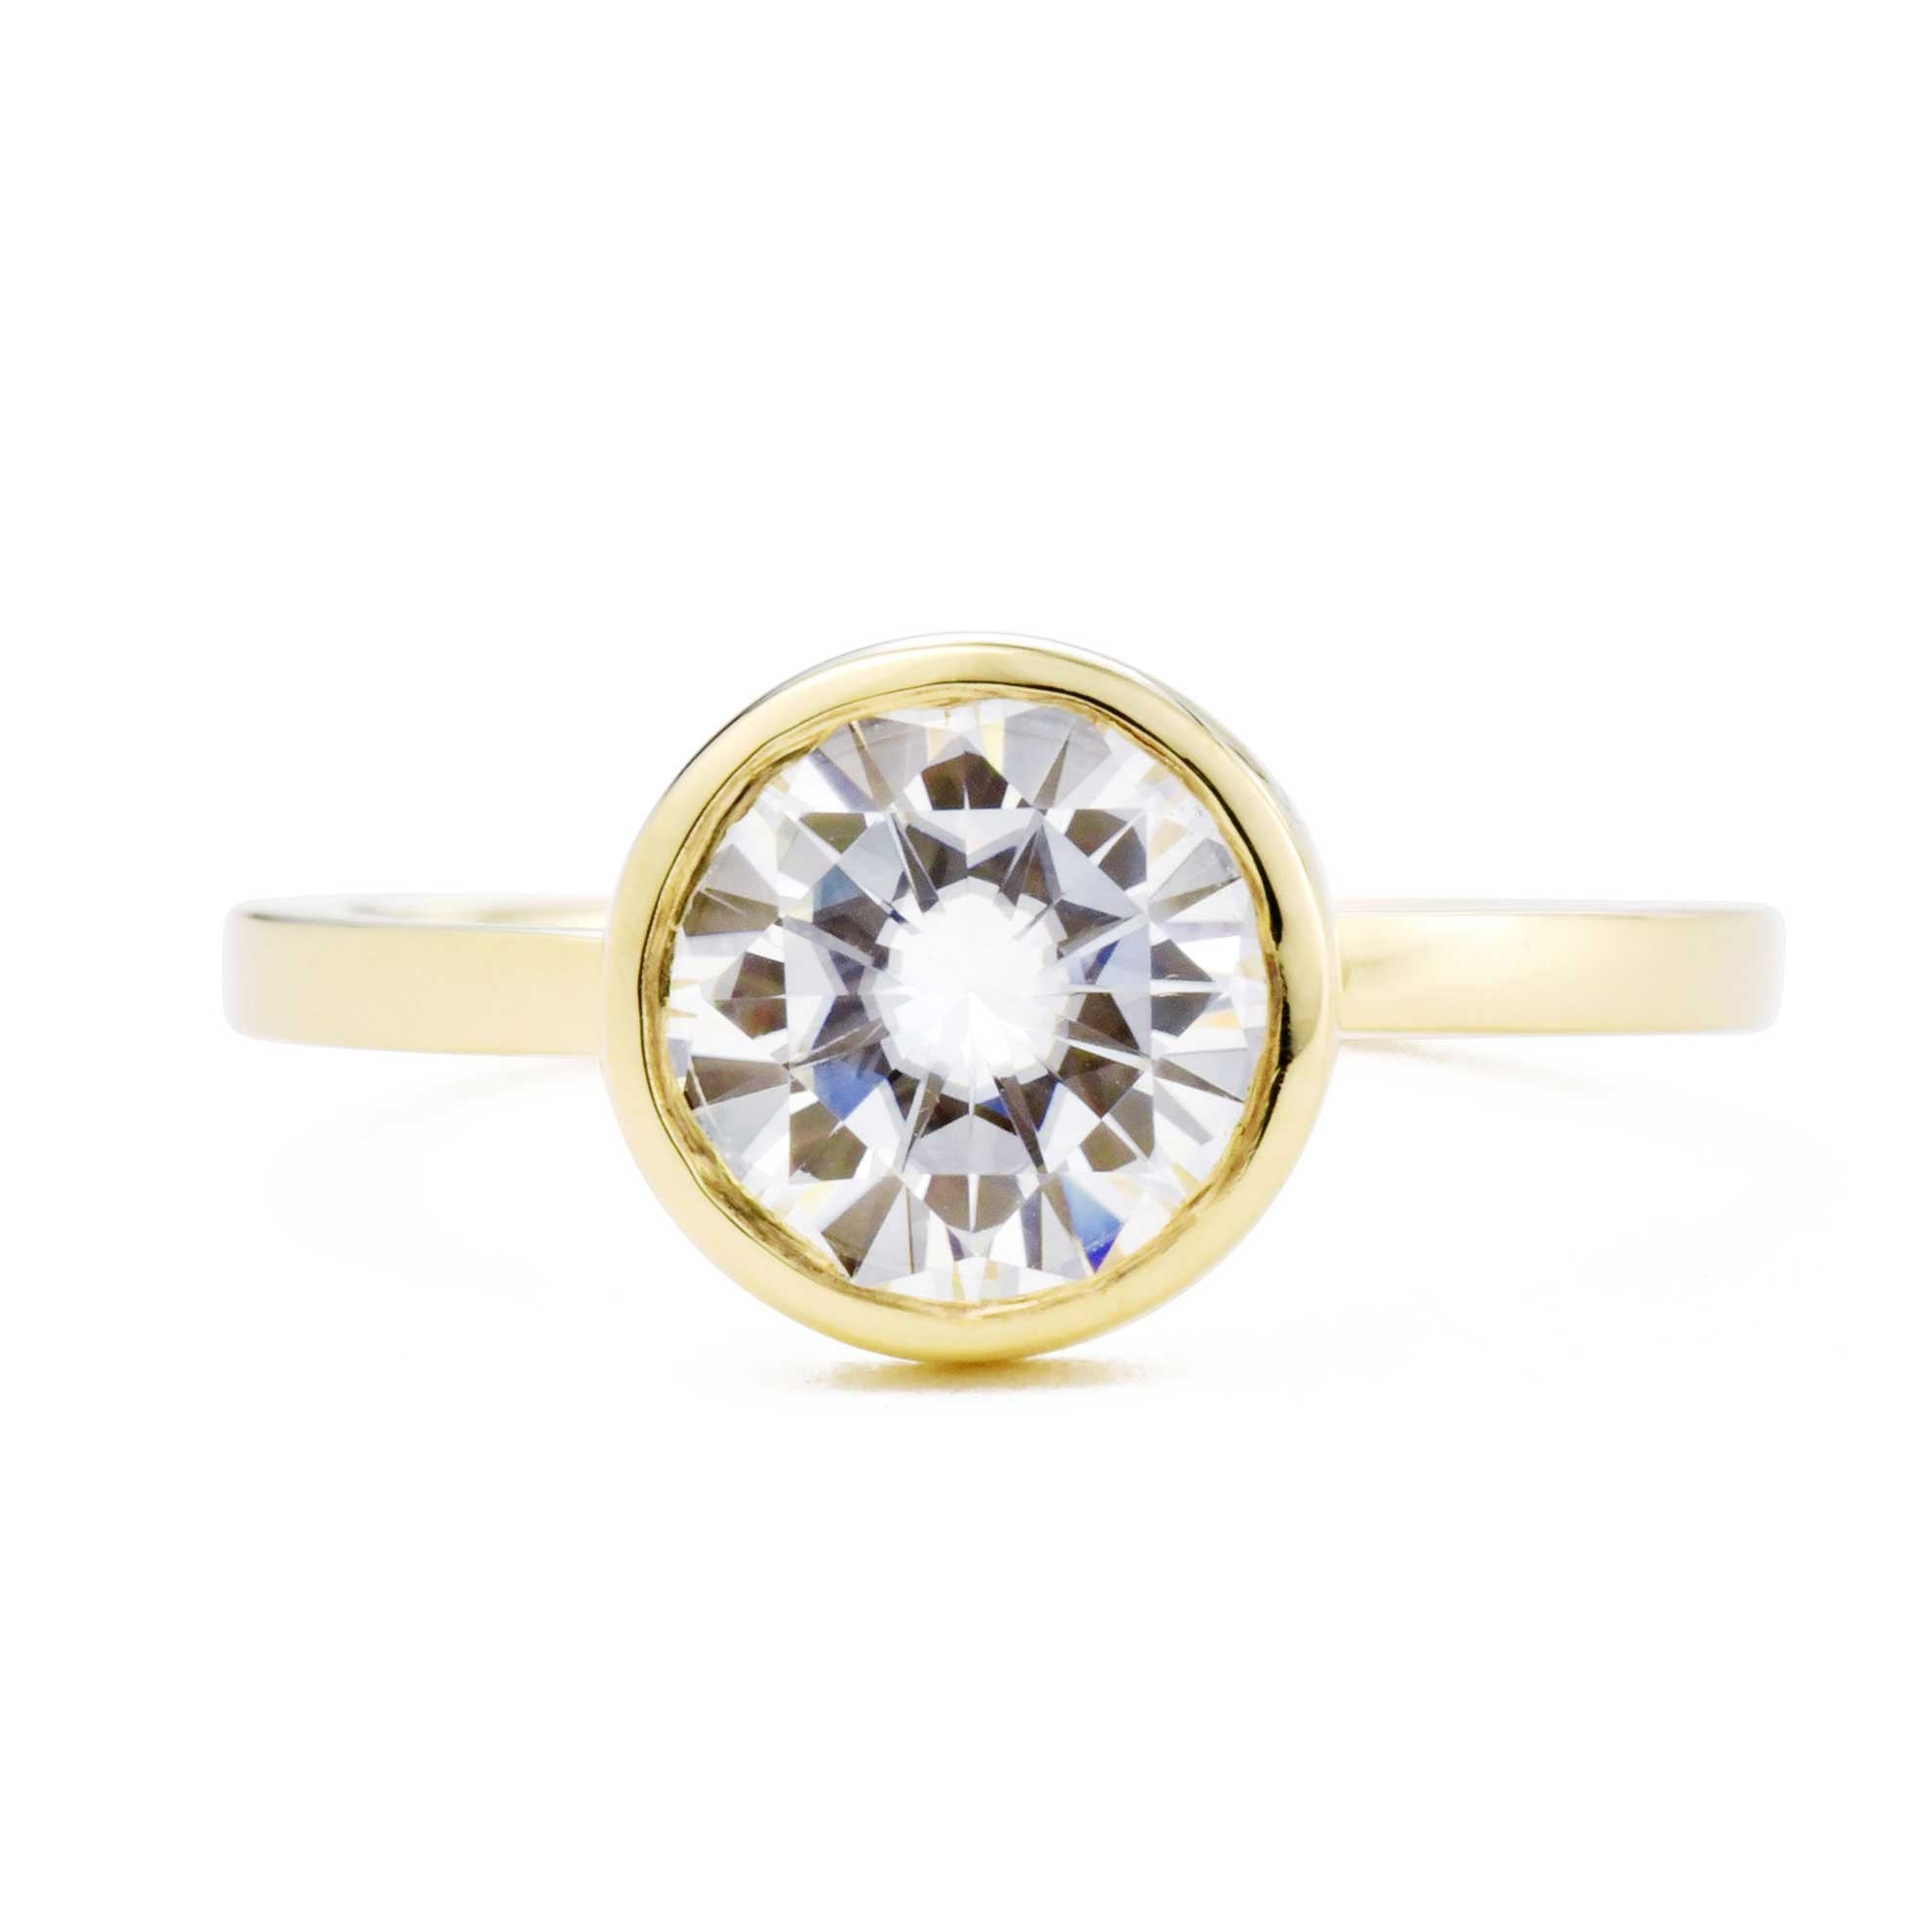 Aura Round Bezel 1.5ct Diamond Engagement Ring in yellow gold